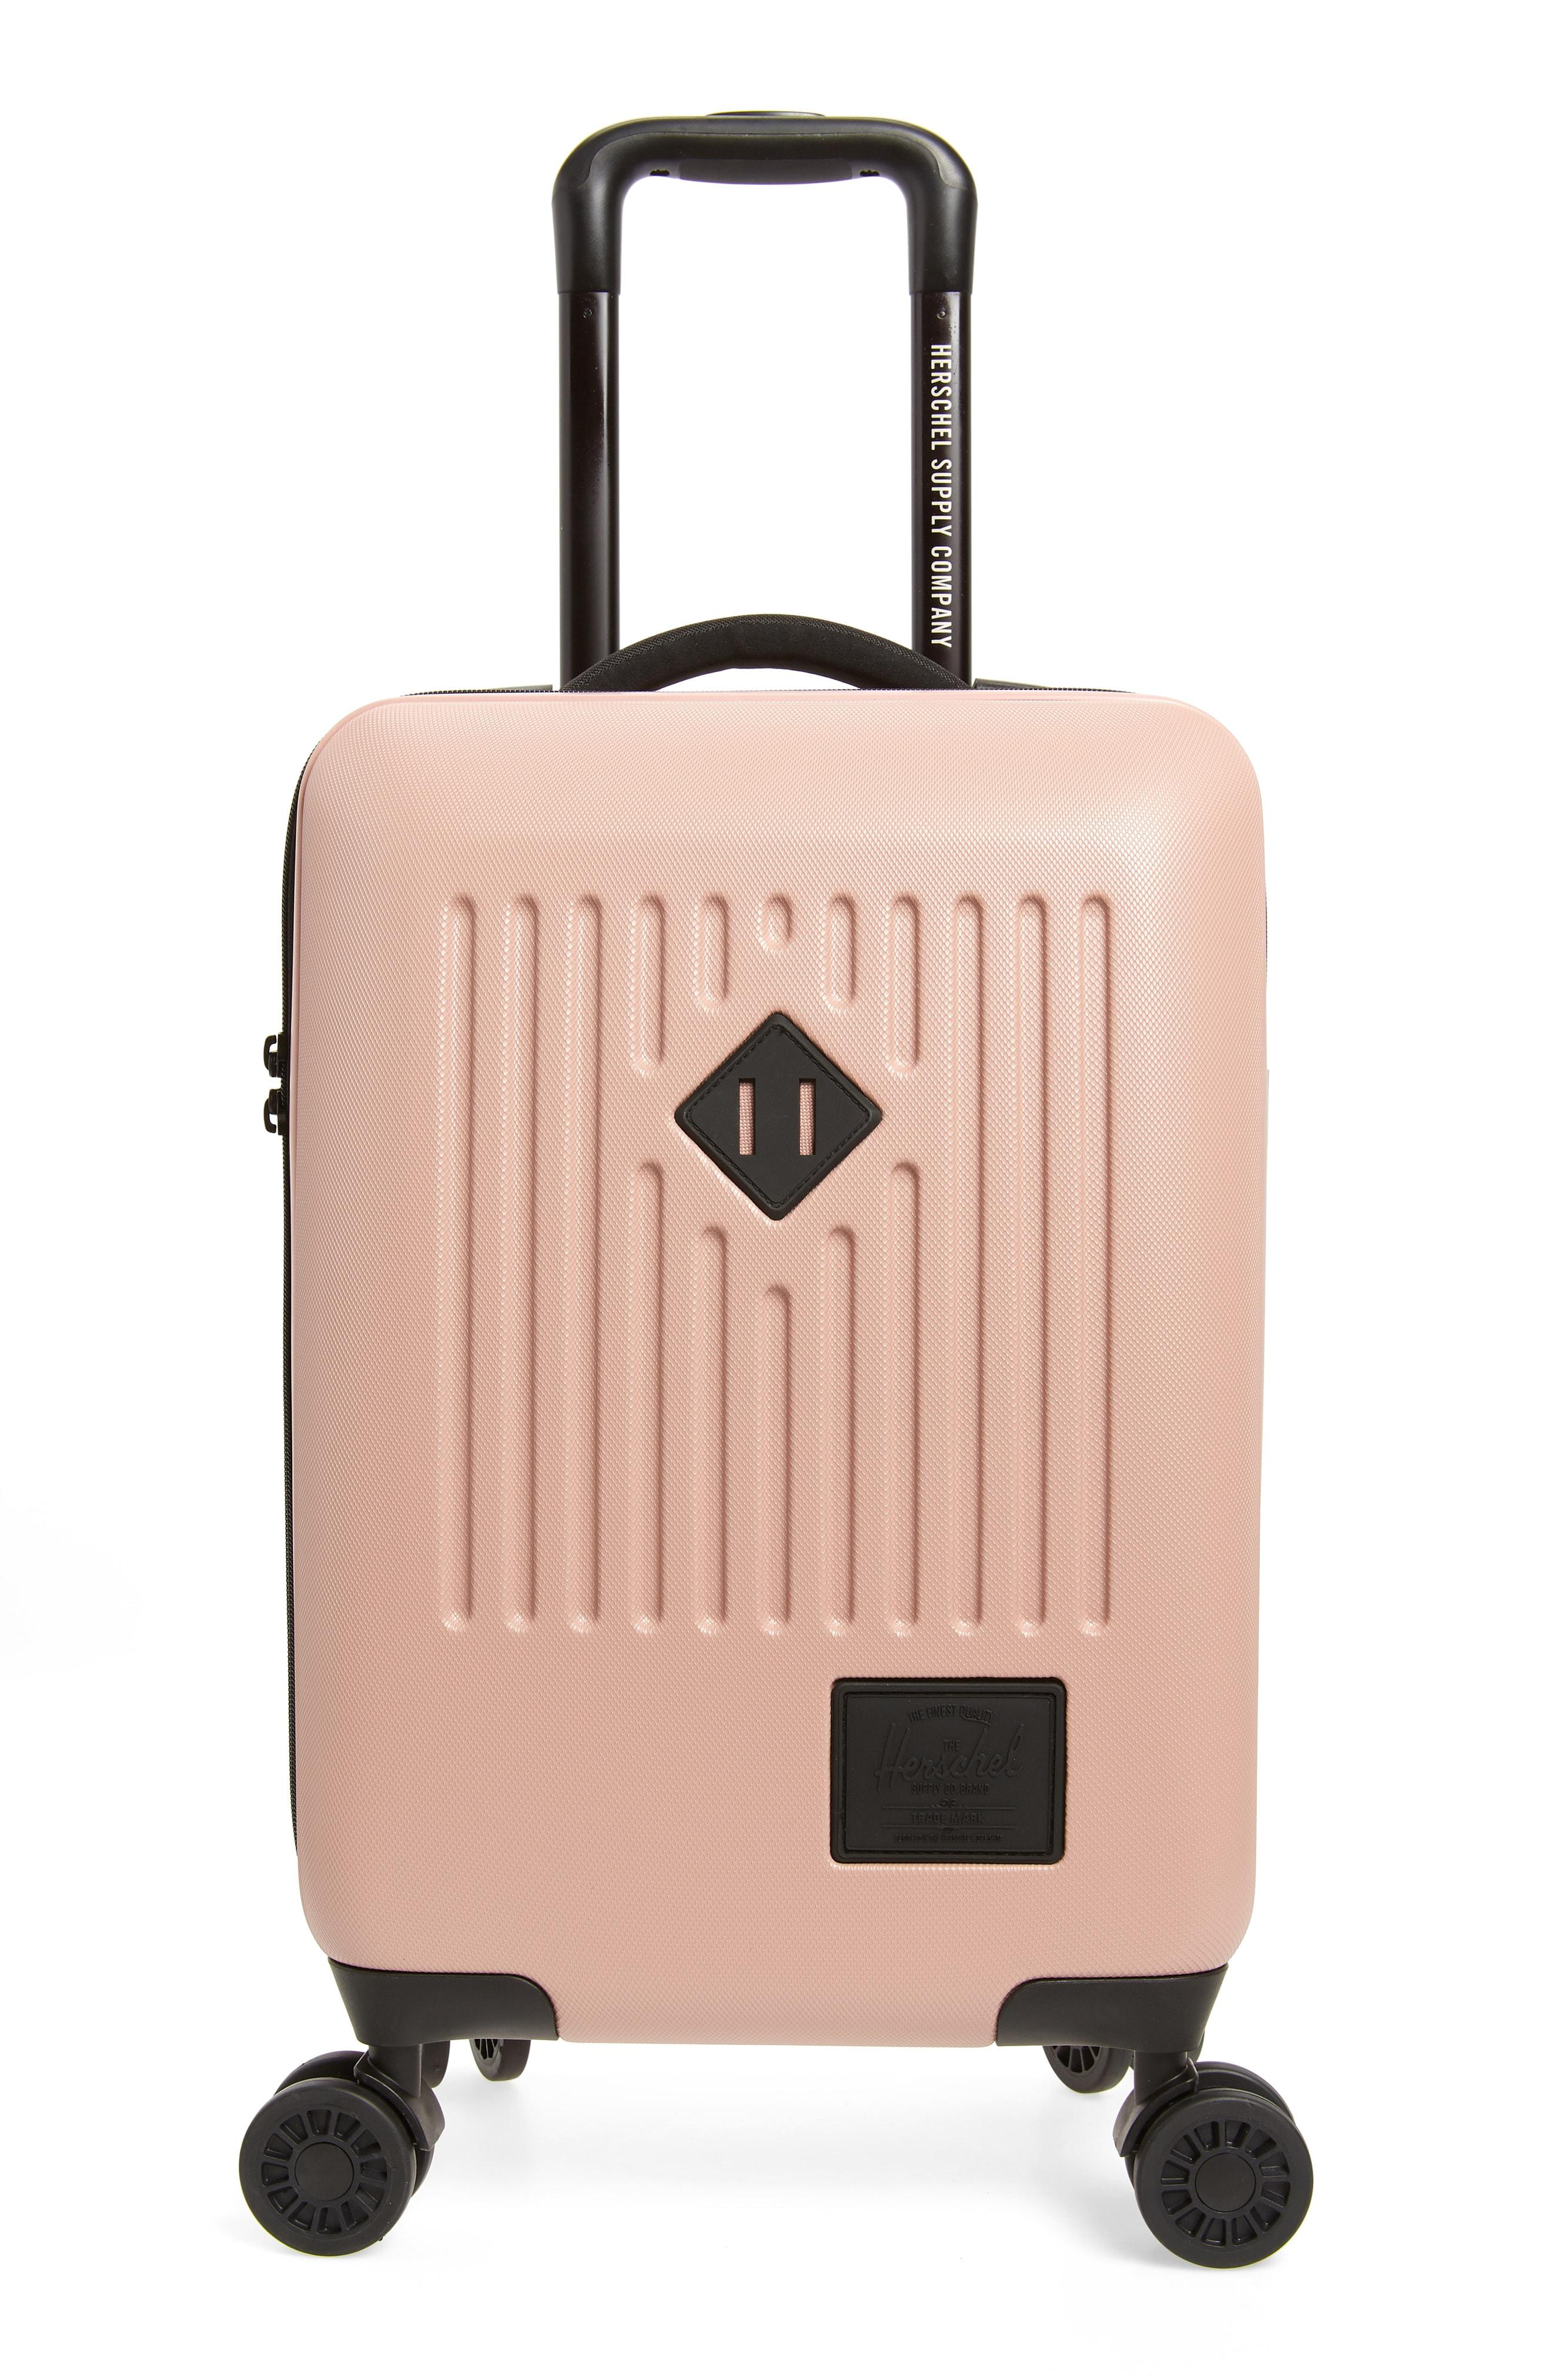 f5db6c157d Lyst - Herschel Supply Co. Trade Small (white) Luggage in Pink ...